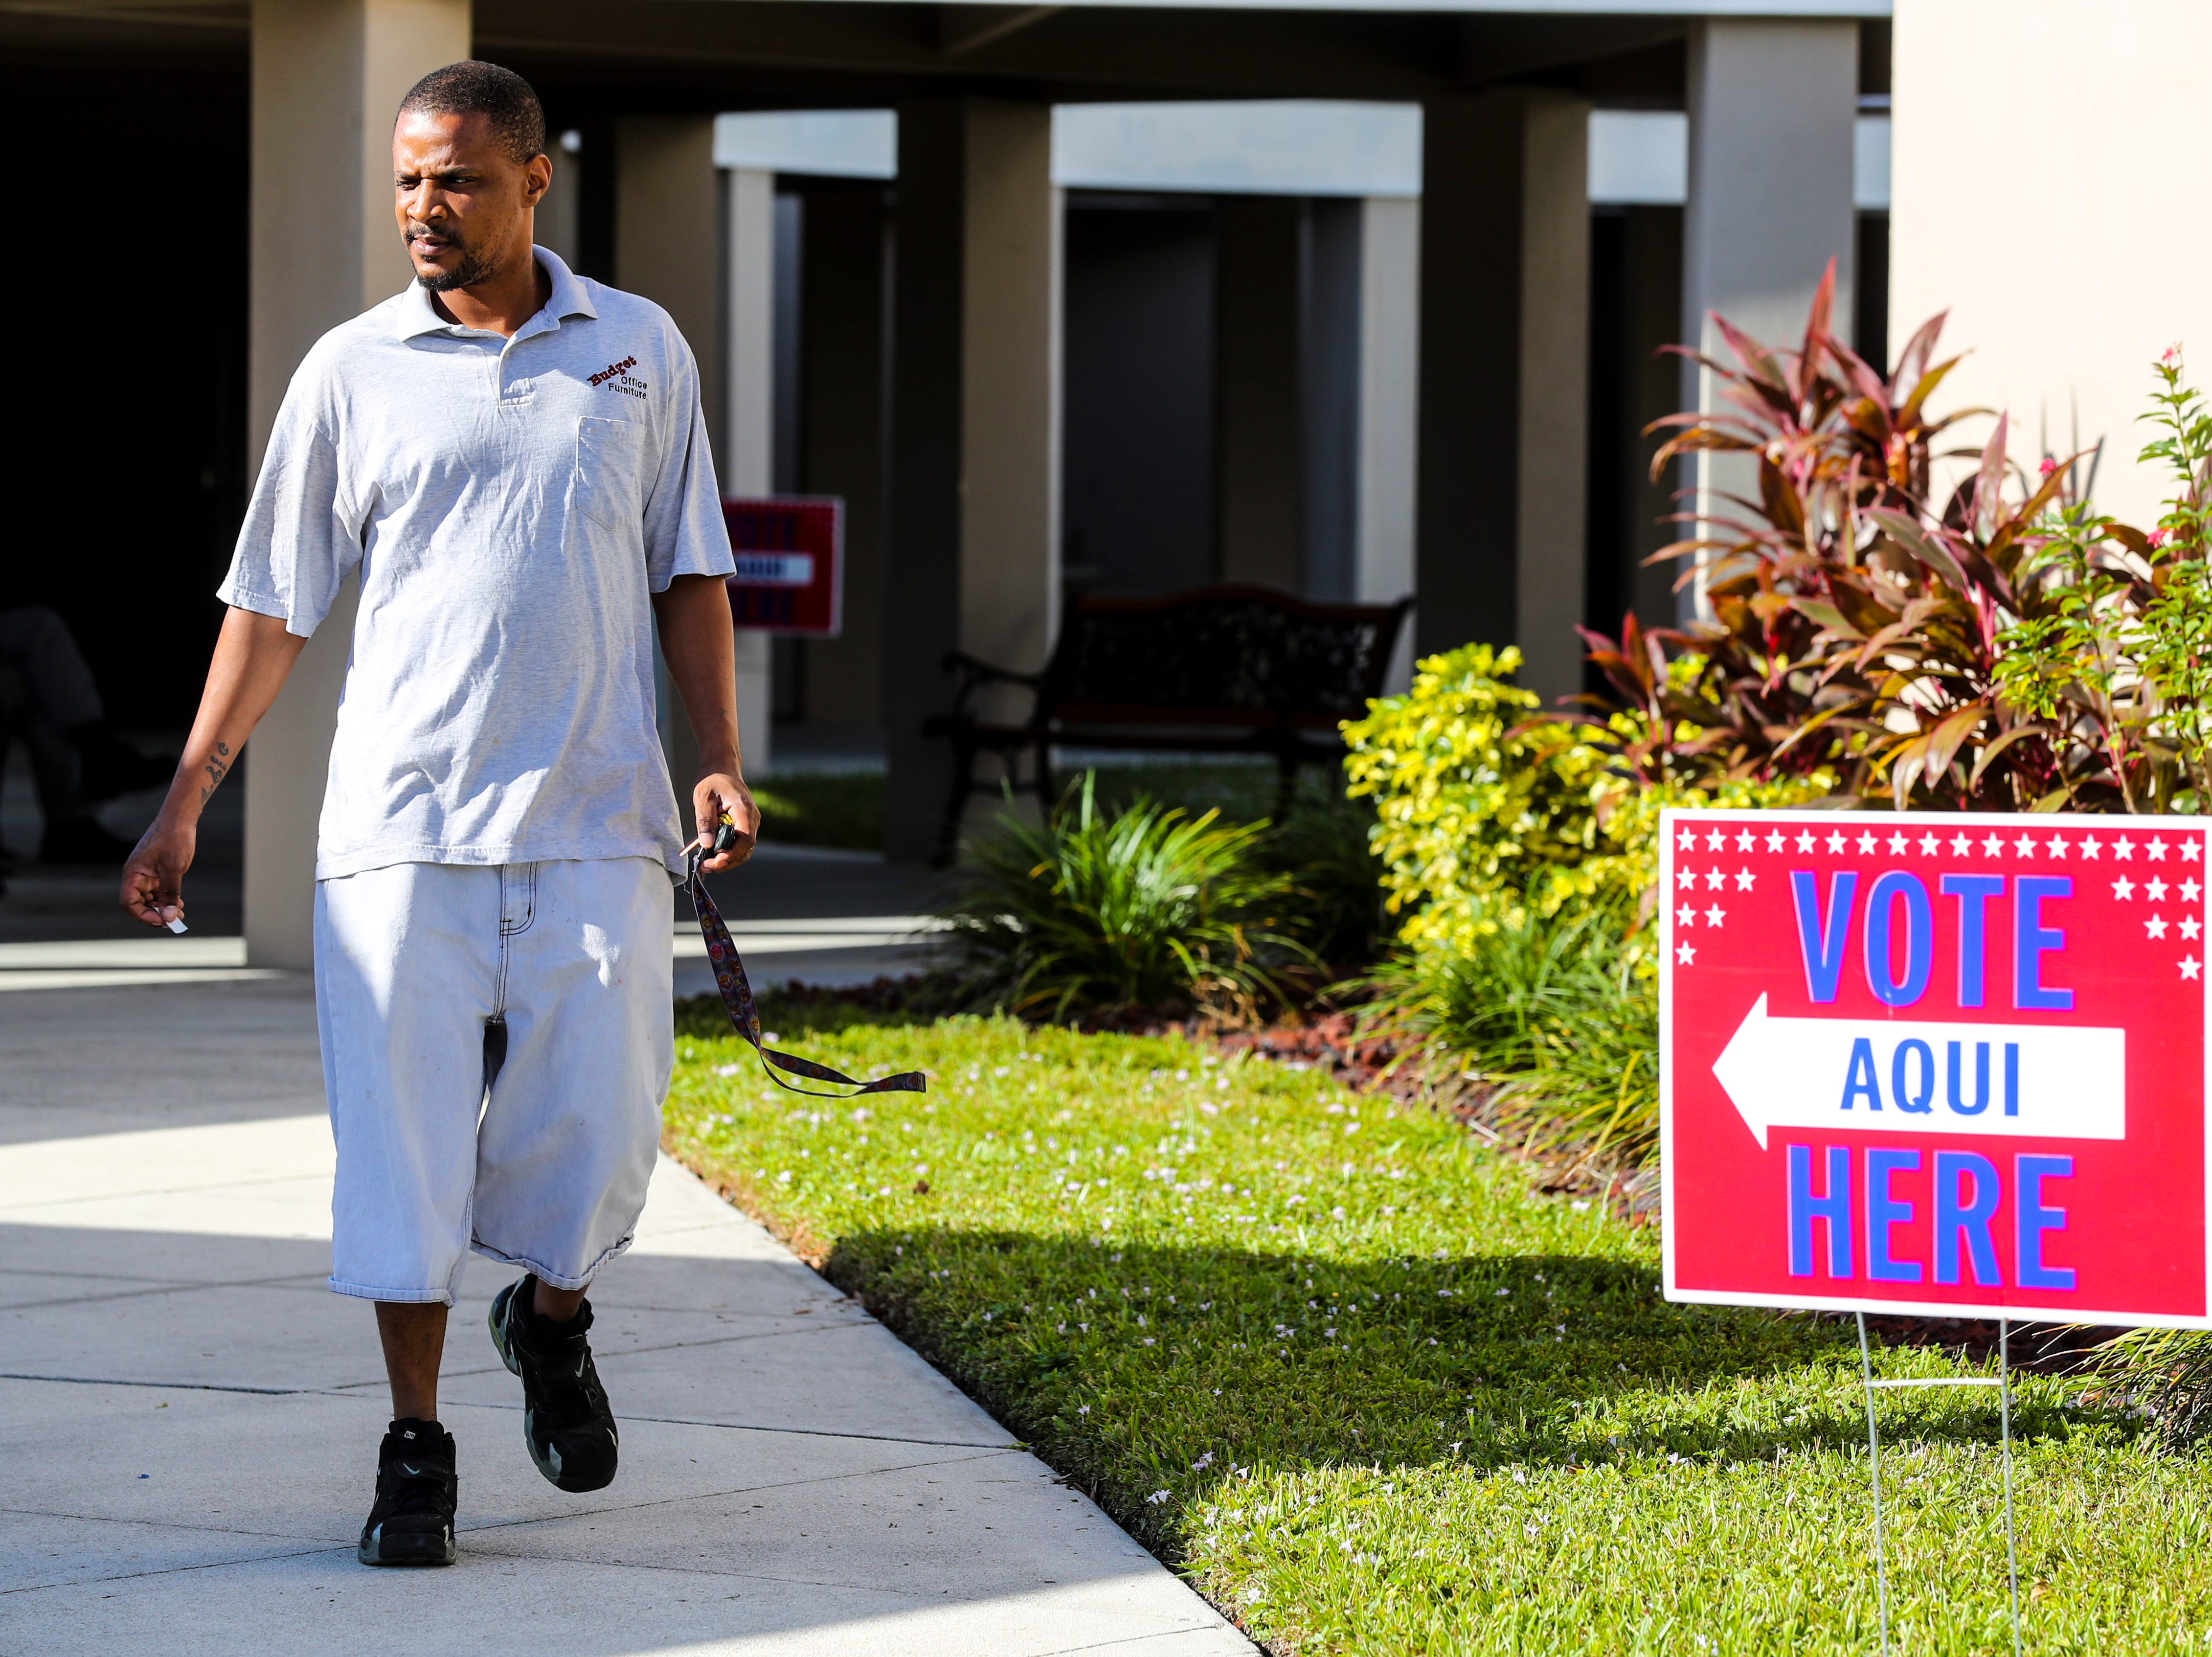 Voters head in and out of Precinct 9 sign in Fort Myers as they exercise their right to vote.